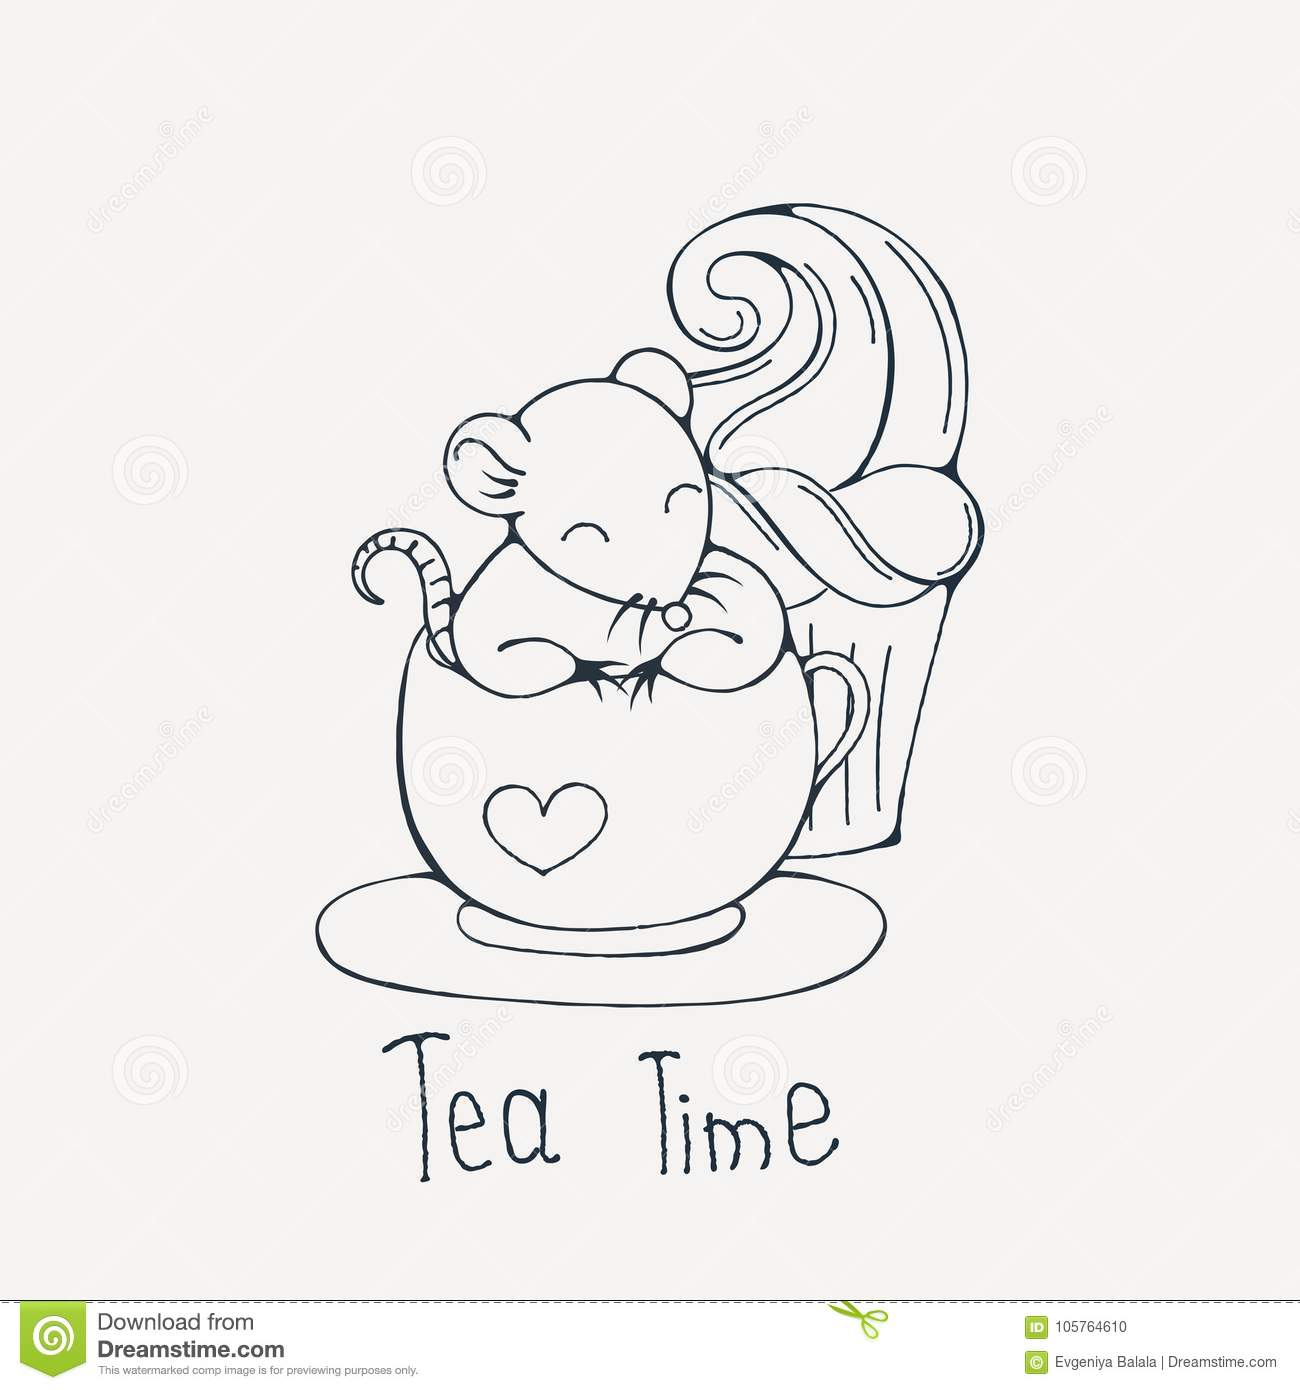 Illustration With Cute Rat In A Cup Of Tea Or Coffee With Cupcakes